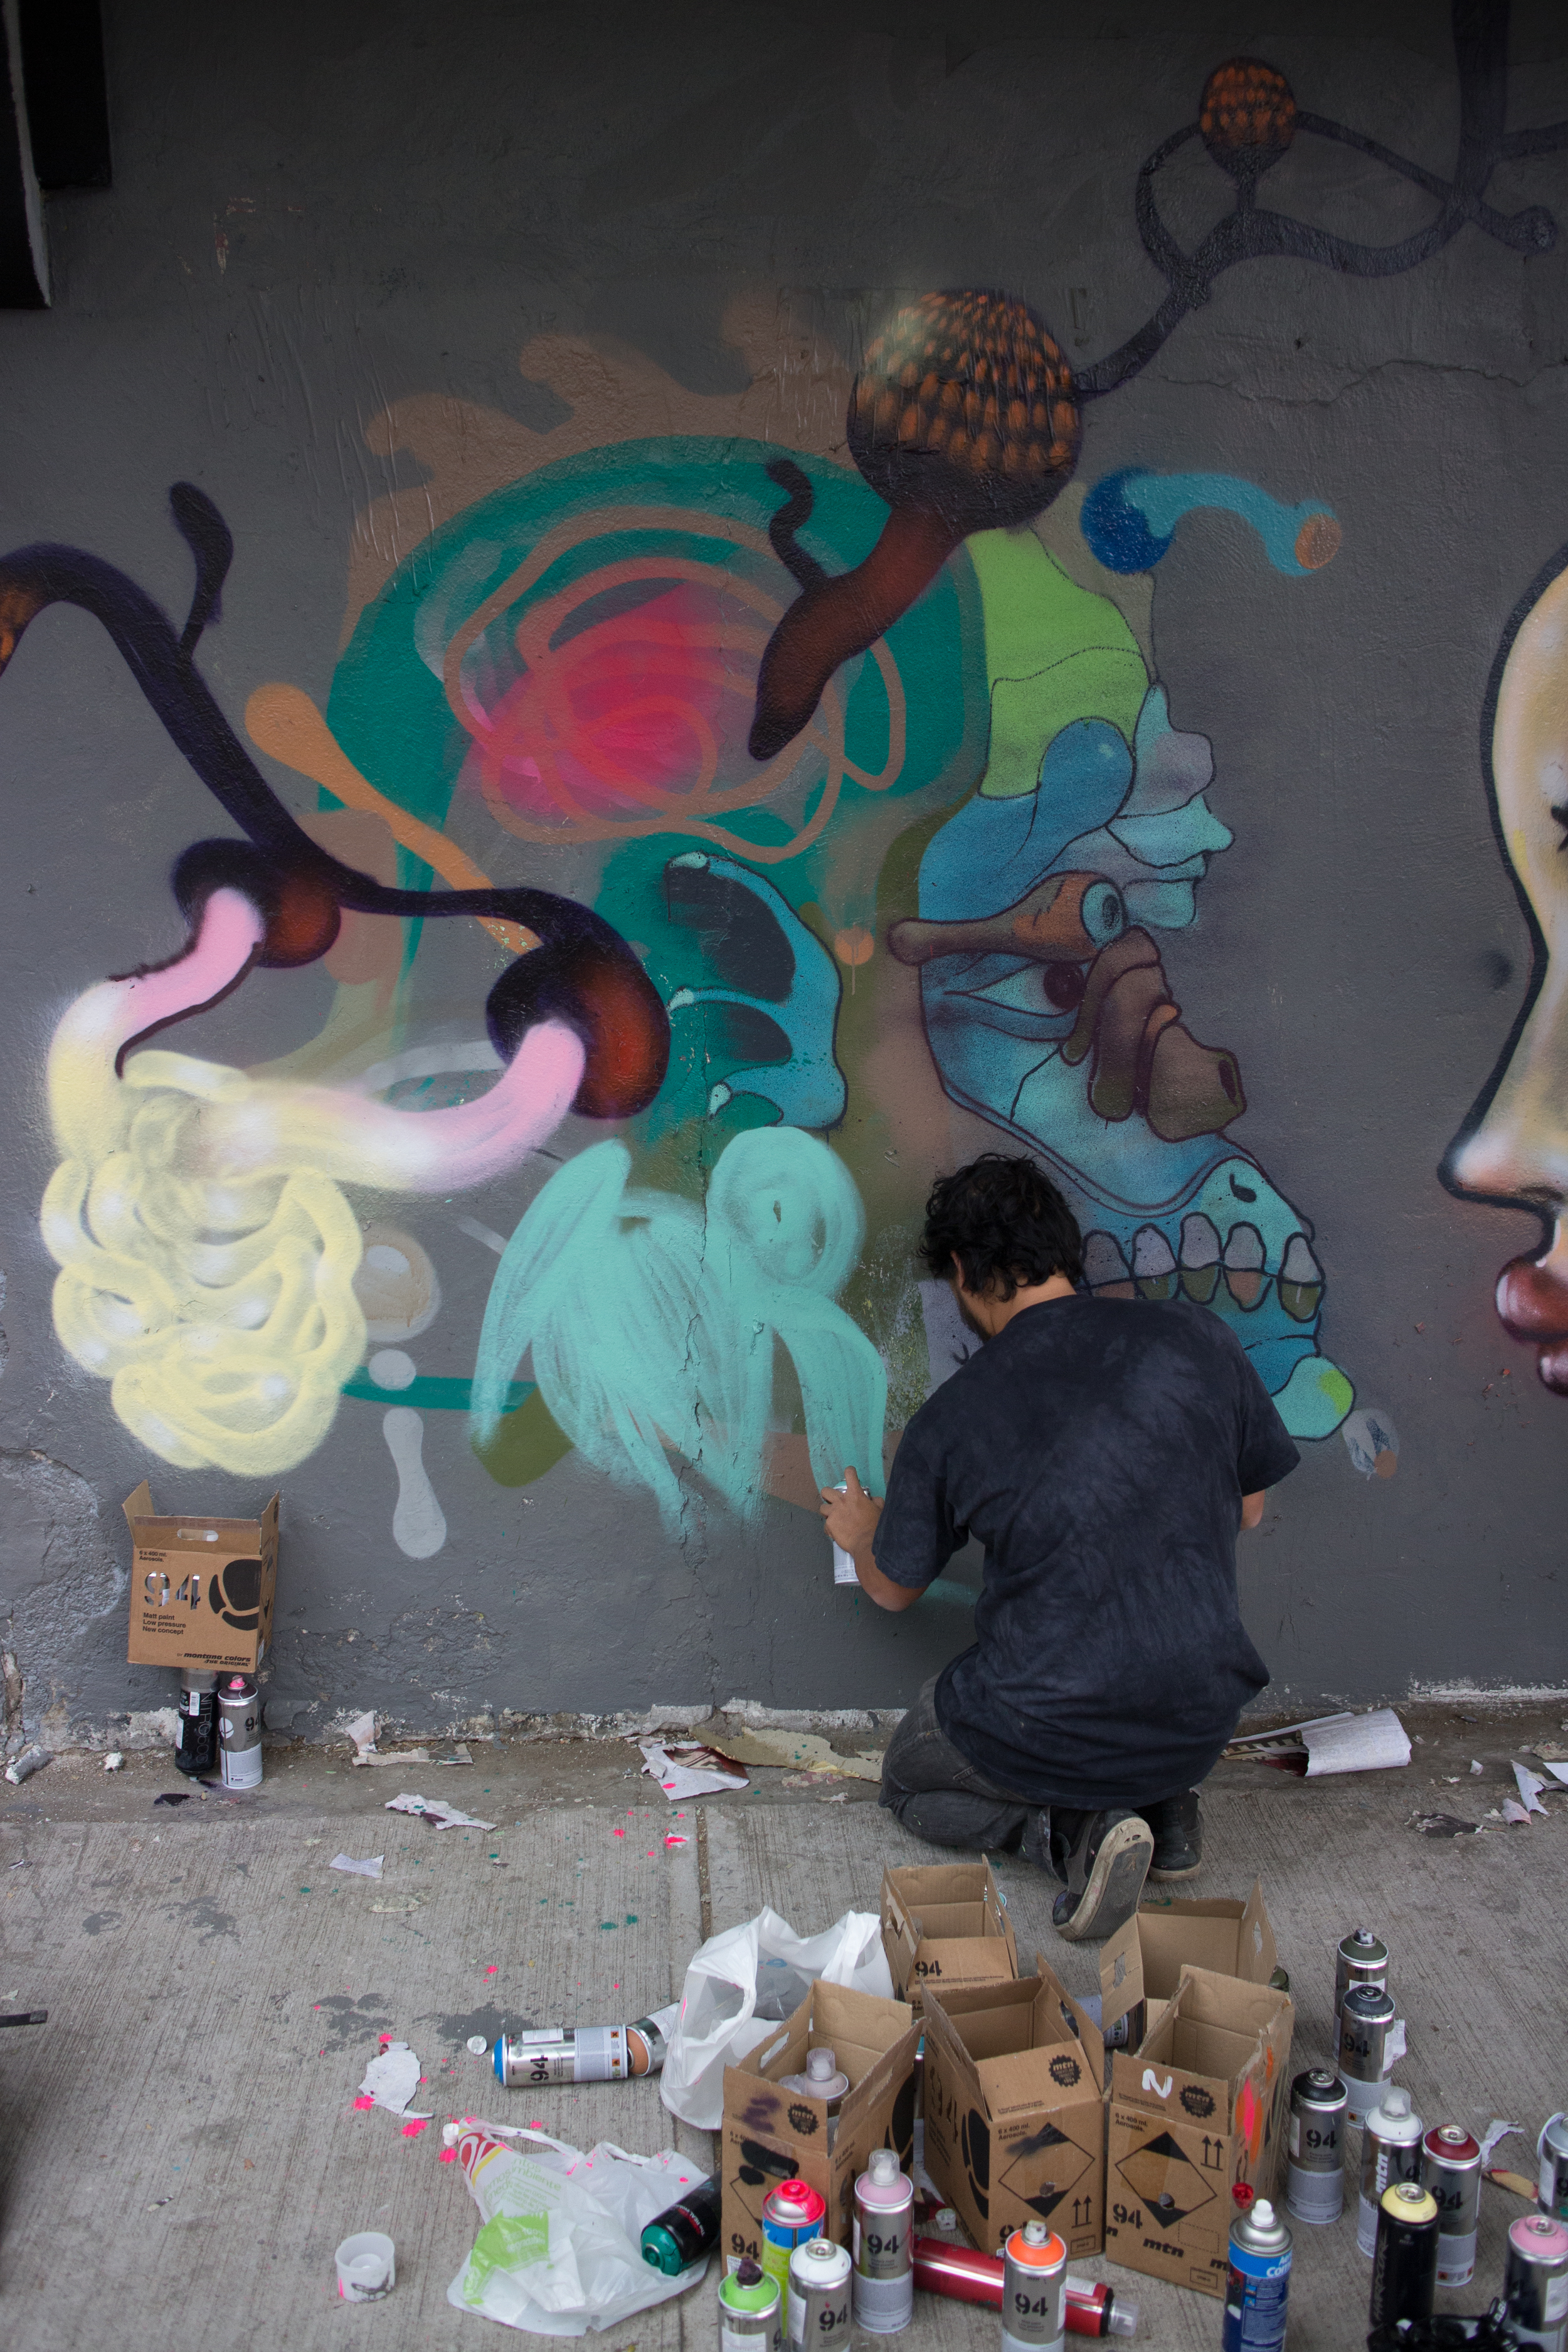 david-choe-mexico-city-street-art-2013-4.jpg